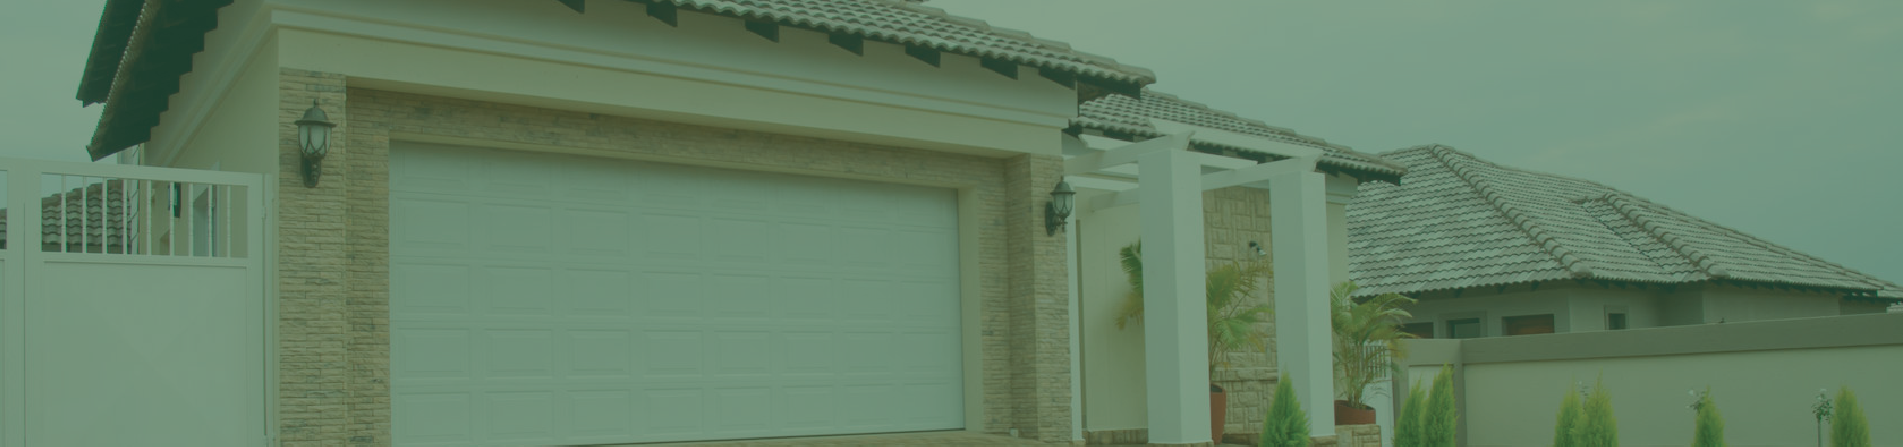 Security Systems Buffalo Rochester Albany Erie Syracuse